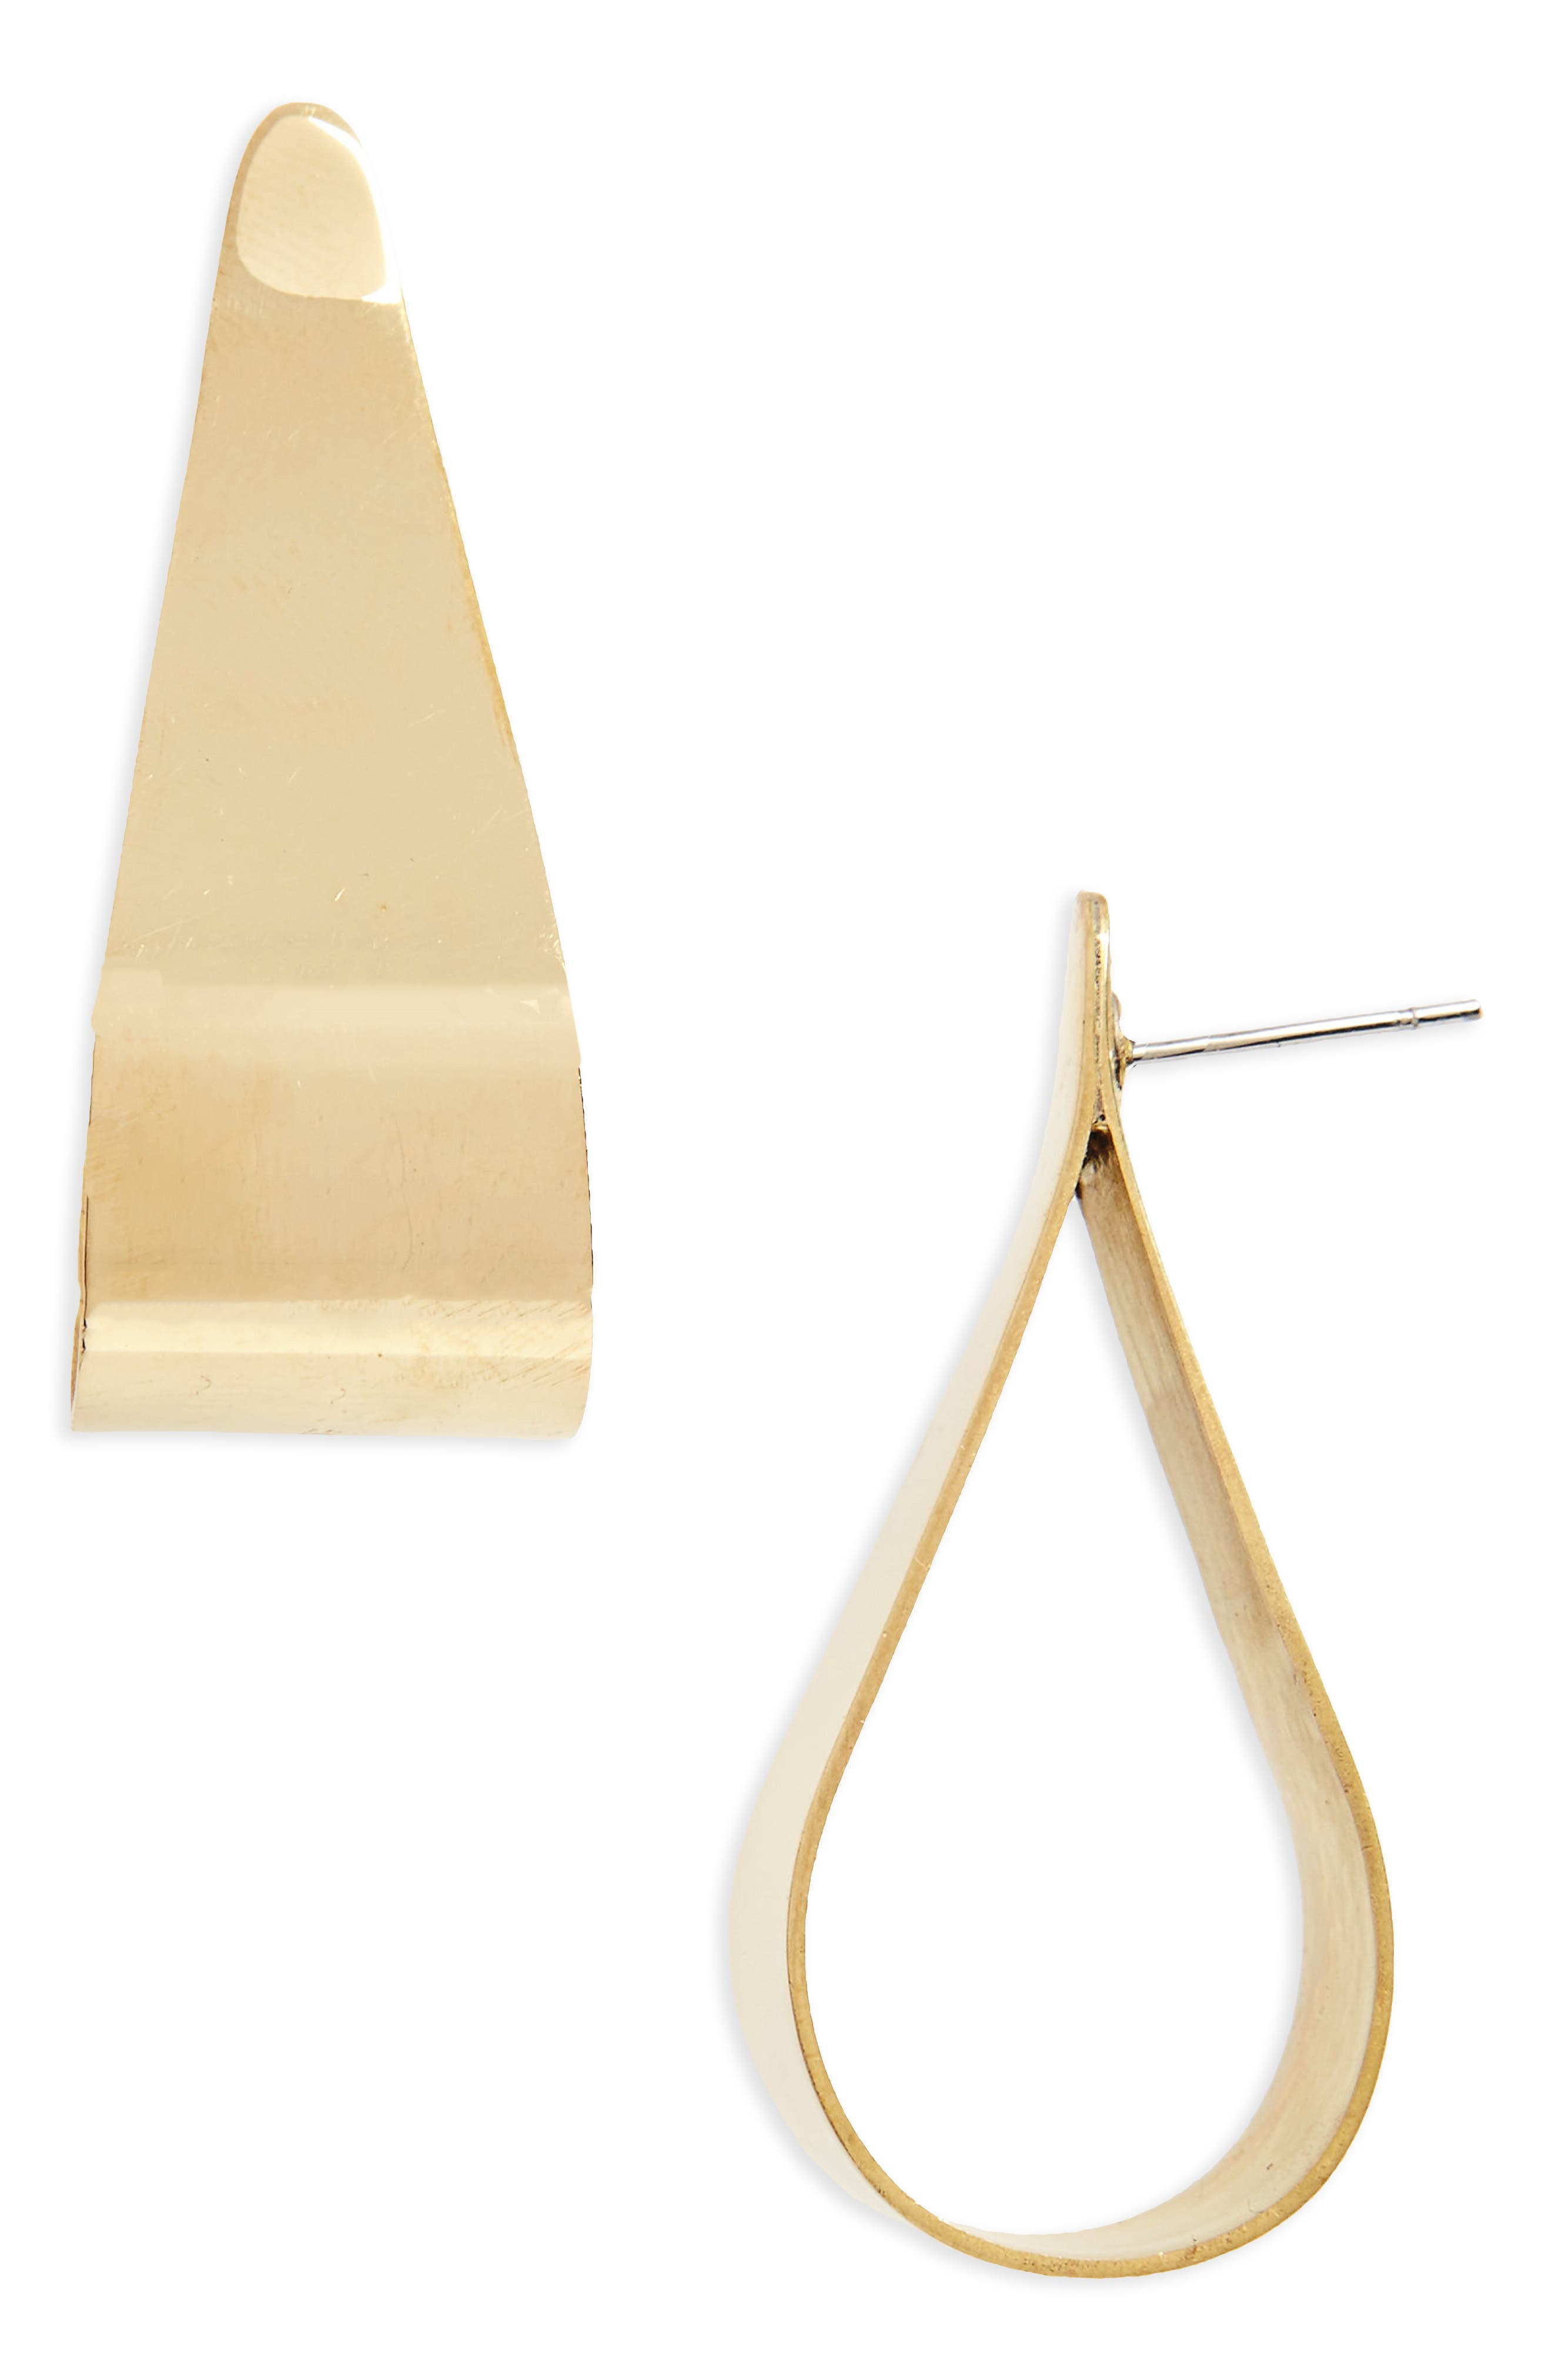 Soko Folded Teardrop Stud Earrings